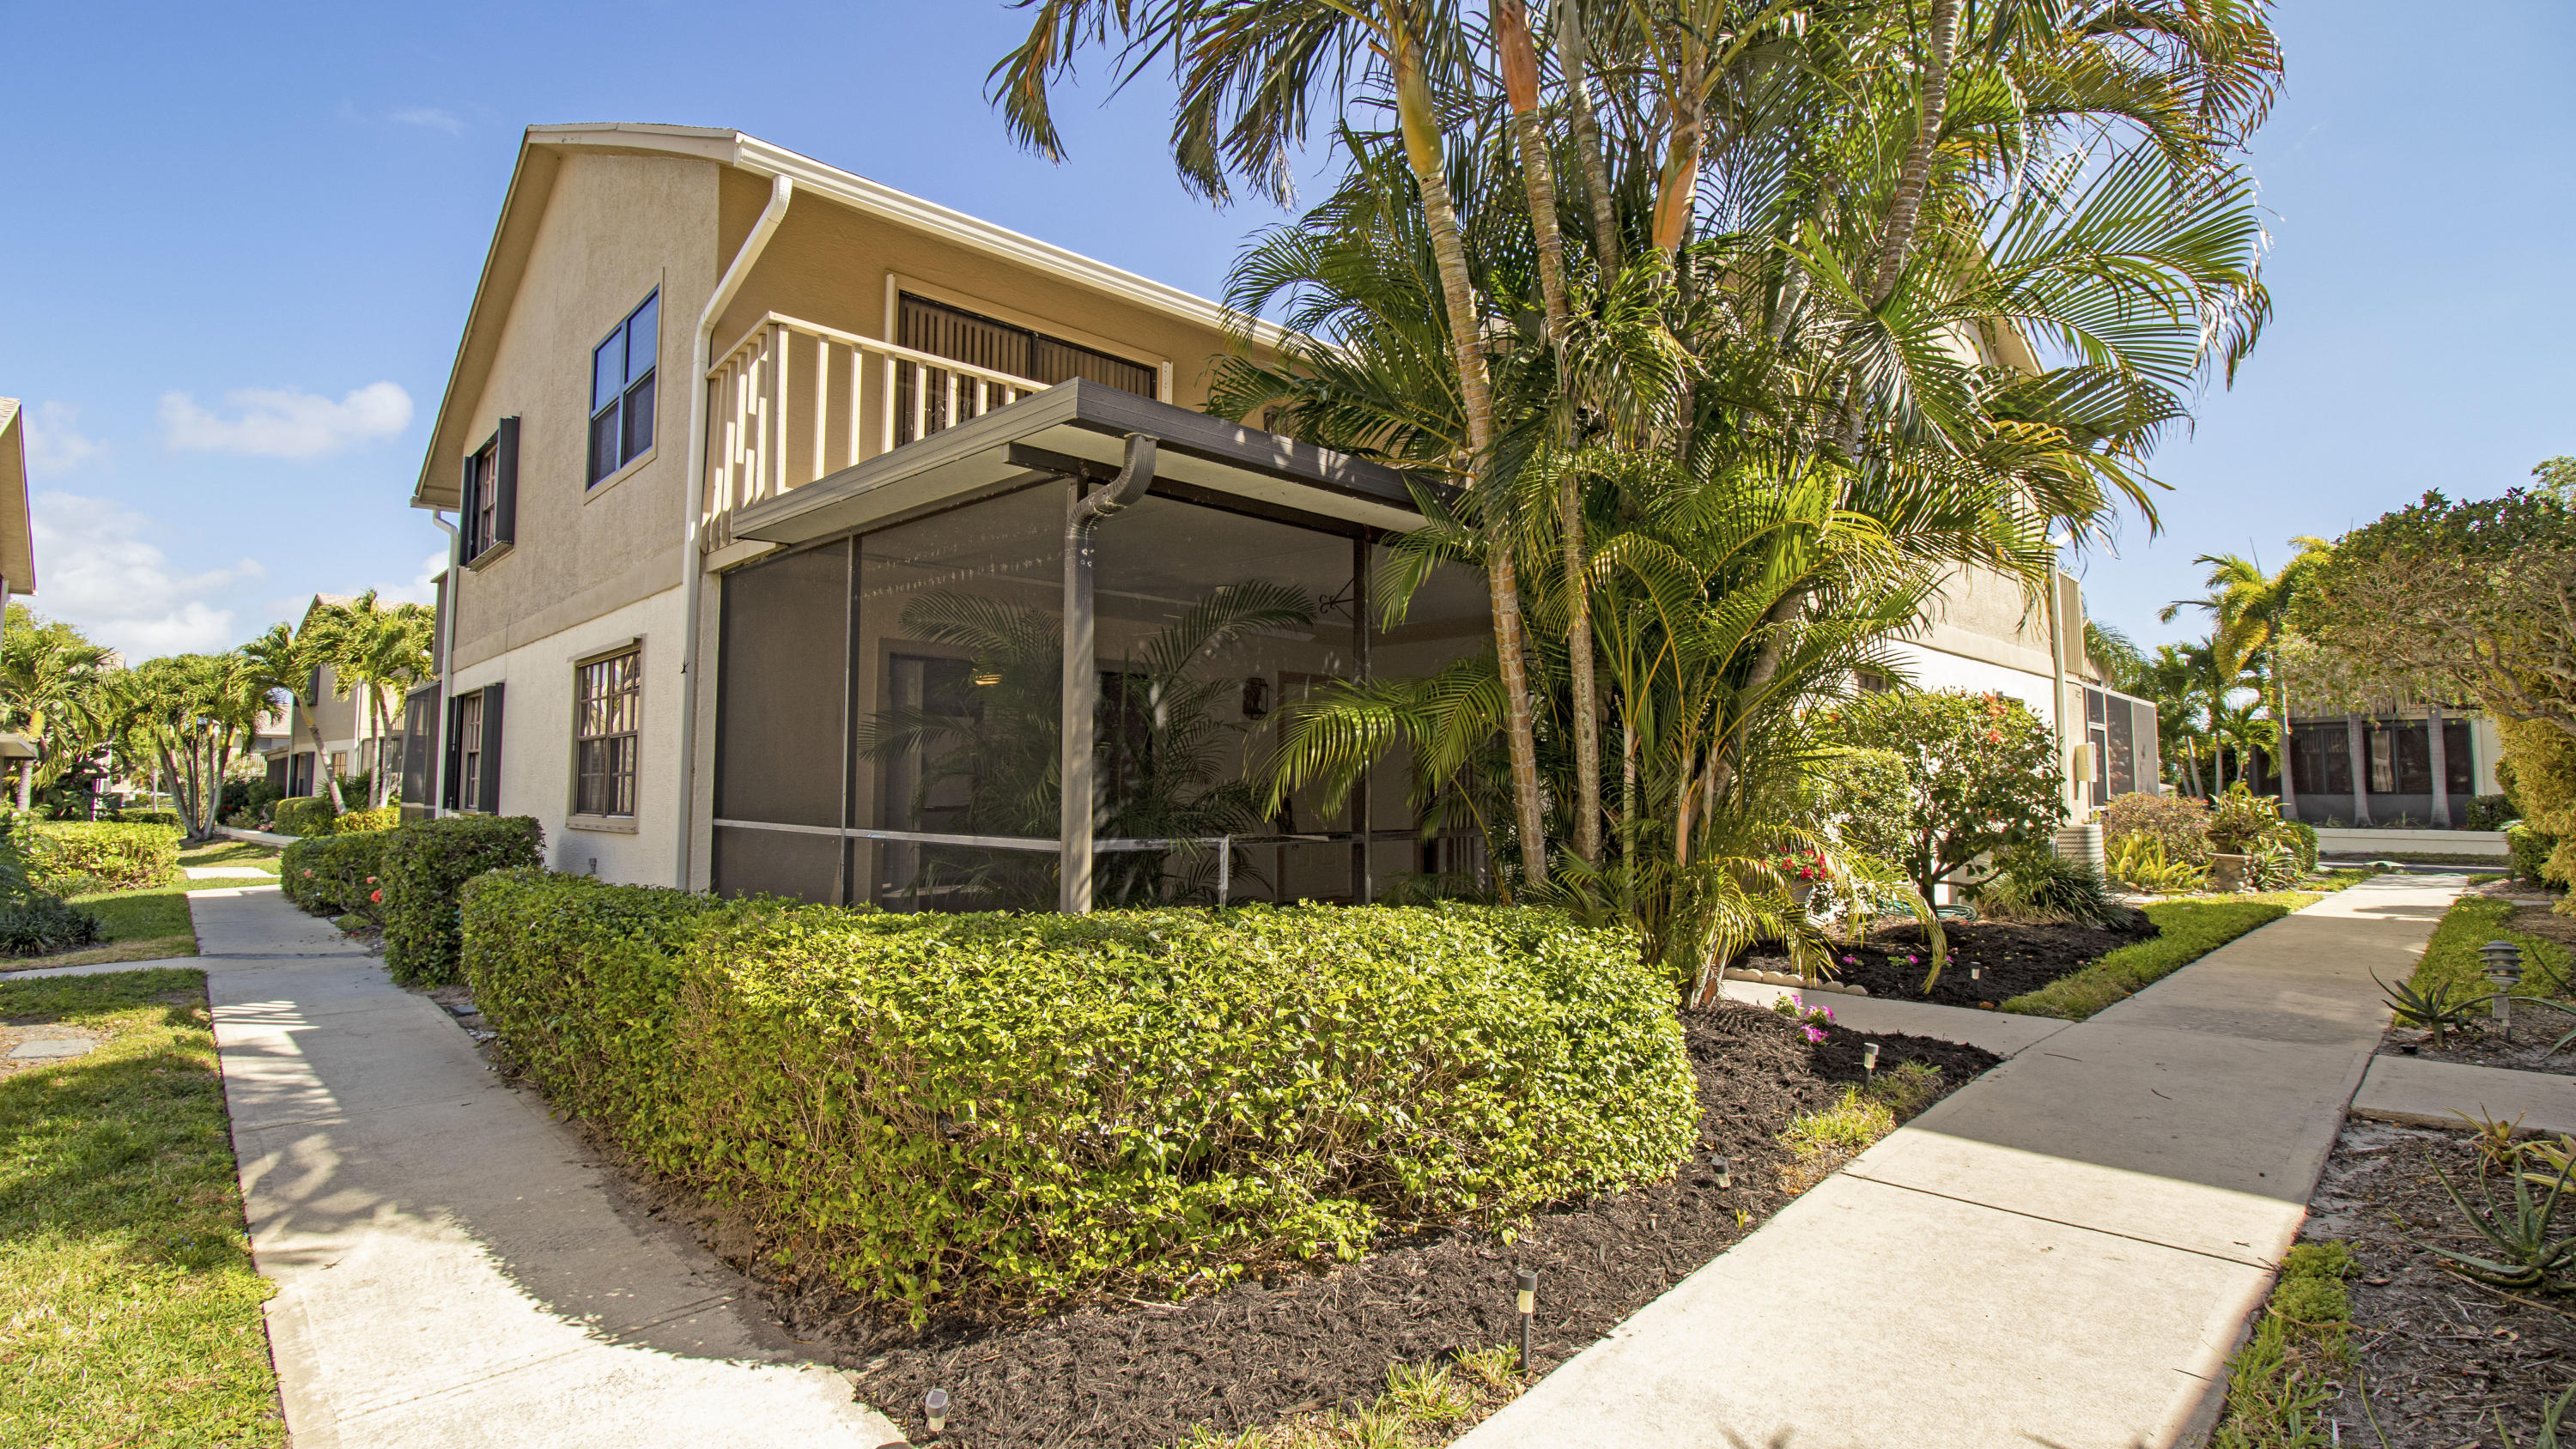 Home for sale in Jamestown Hobe Sound Florida